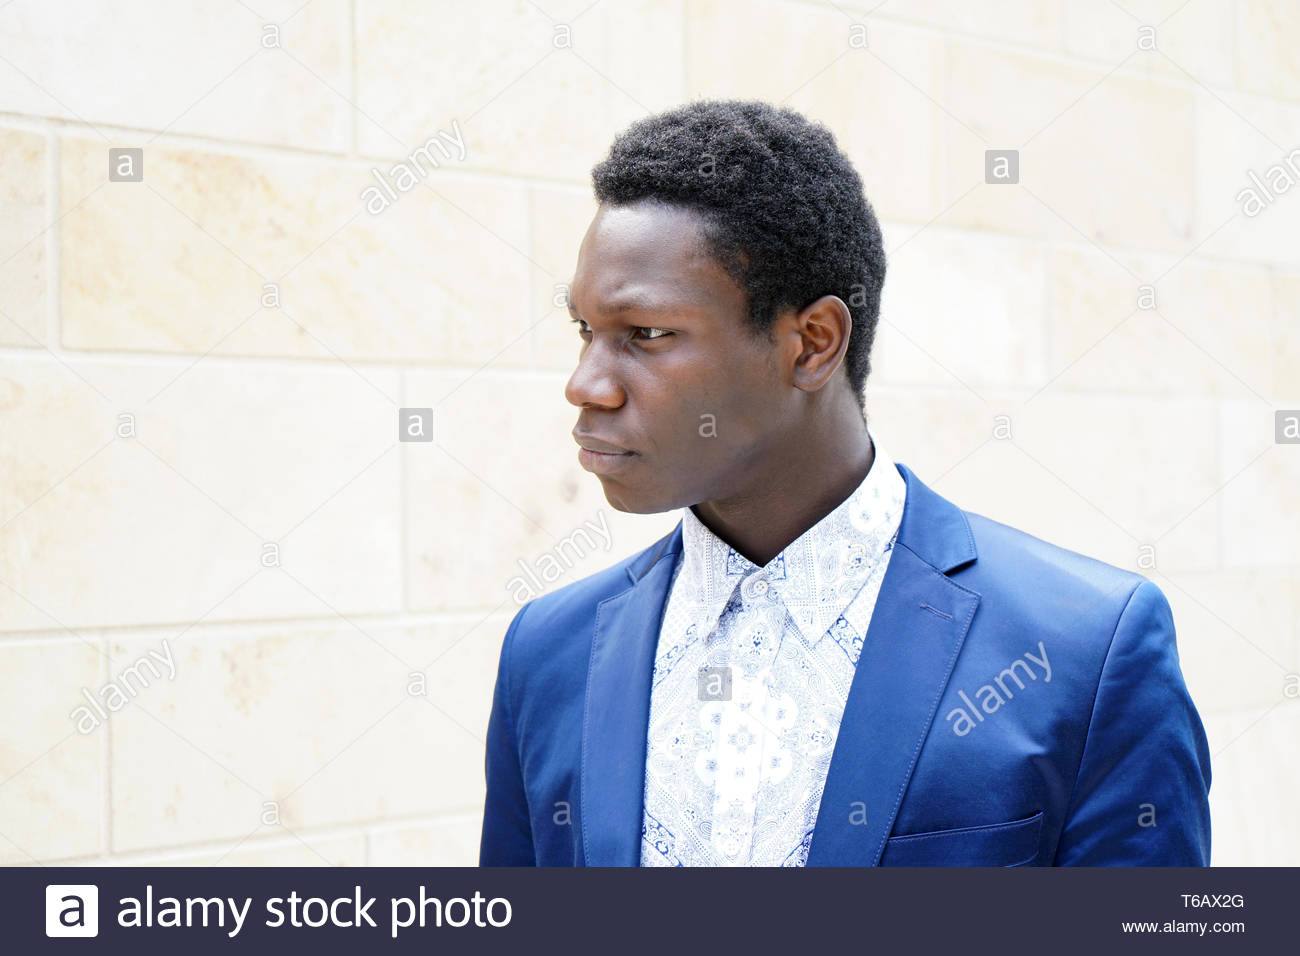 young man of african descent - Stock Image